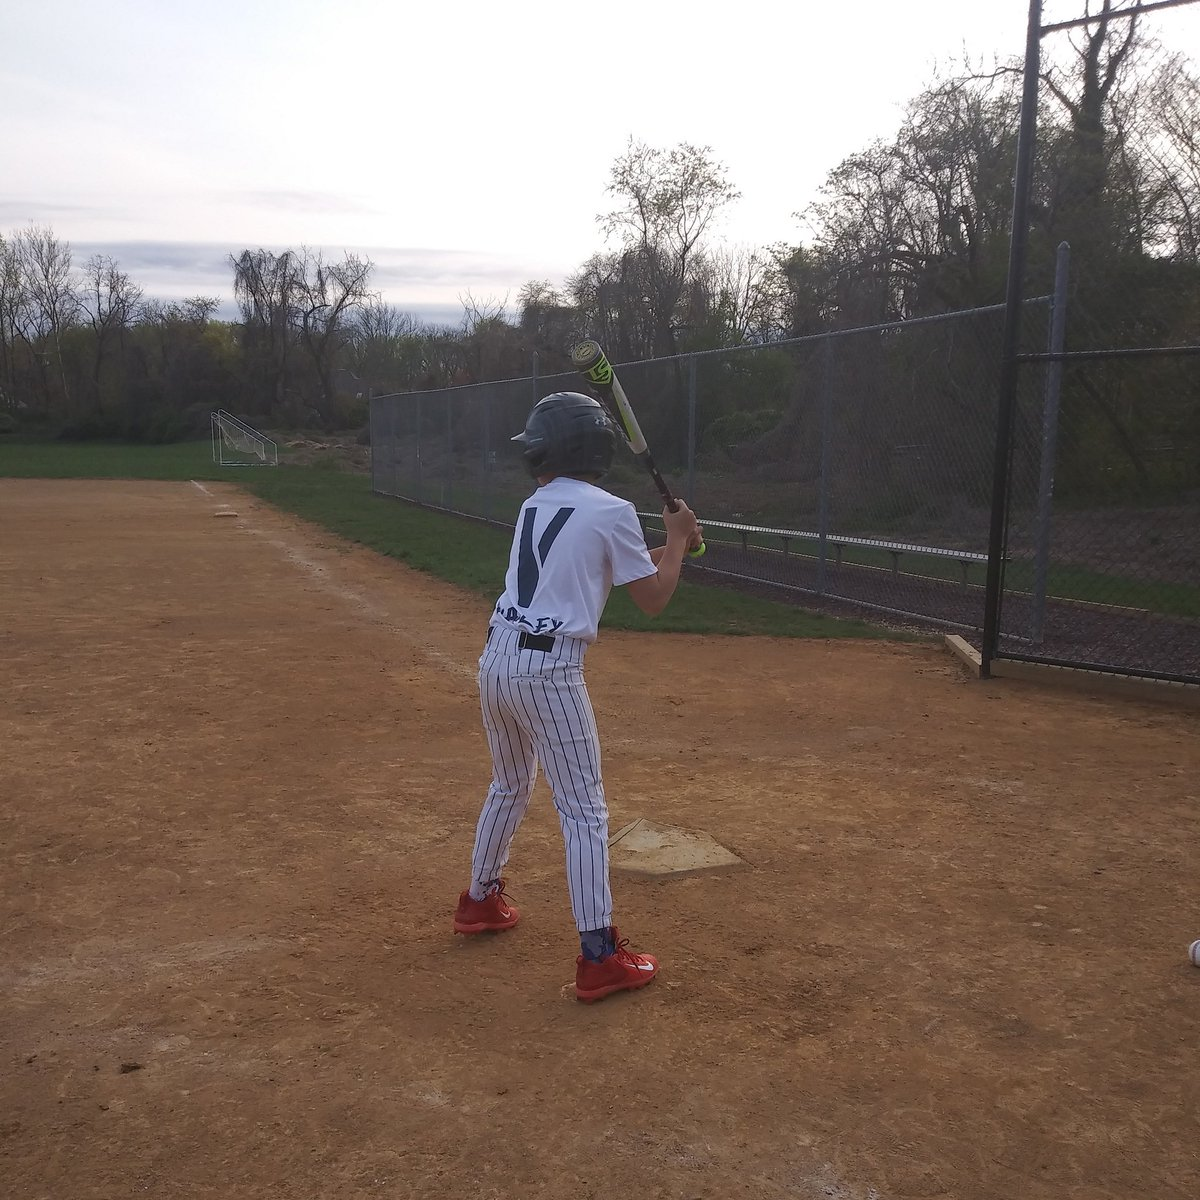 Are We Any Closer To Having Baseball In 2020?   @MLB @BaseballAmerica @baseballyouth @USABaseball @prepbaseball @PerfectGameUSA #MLB #Baseball #BaseballAmerica #USABaseball #USSSA #PlayBall #MLBAtHome #PrepBaseballReport #PrepBaseball #PerfectGameUSA #PGUSA